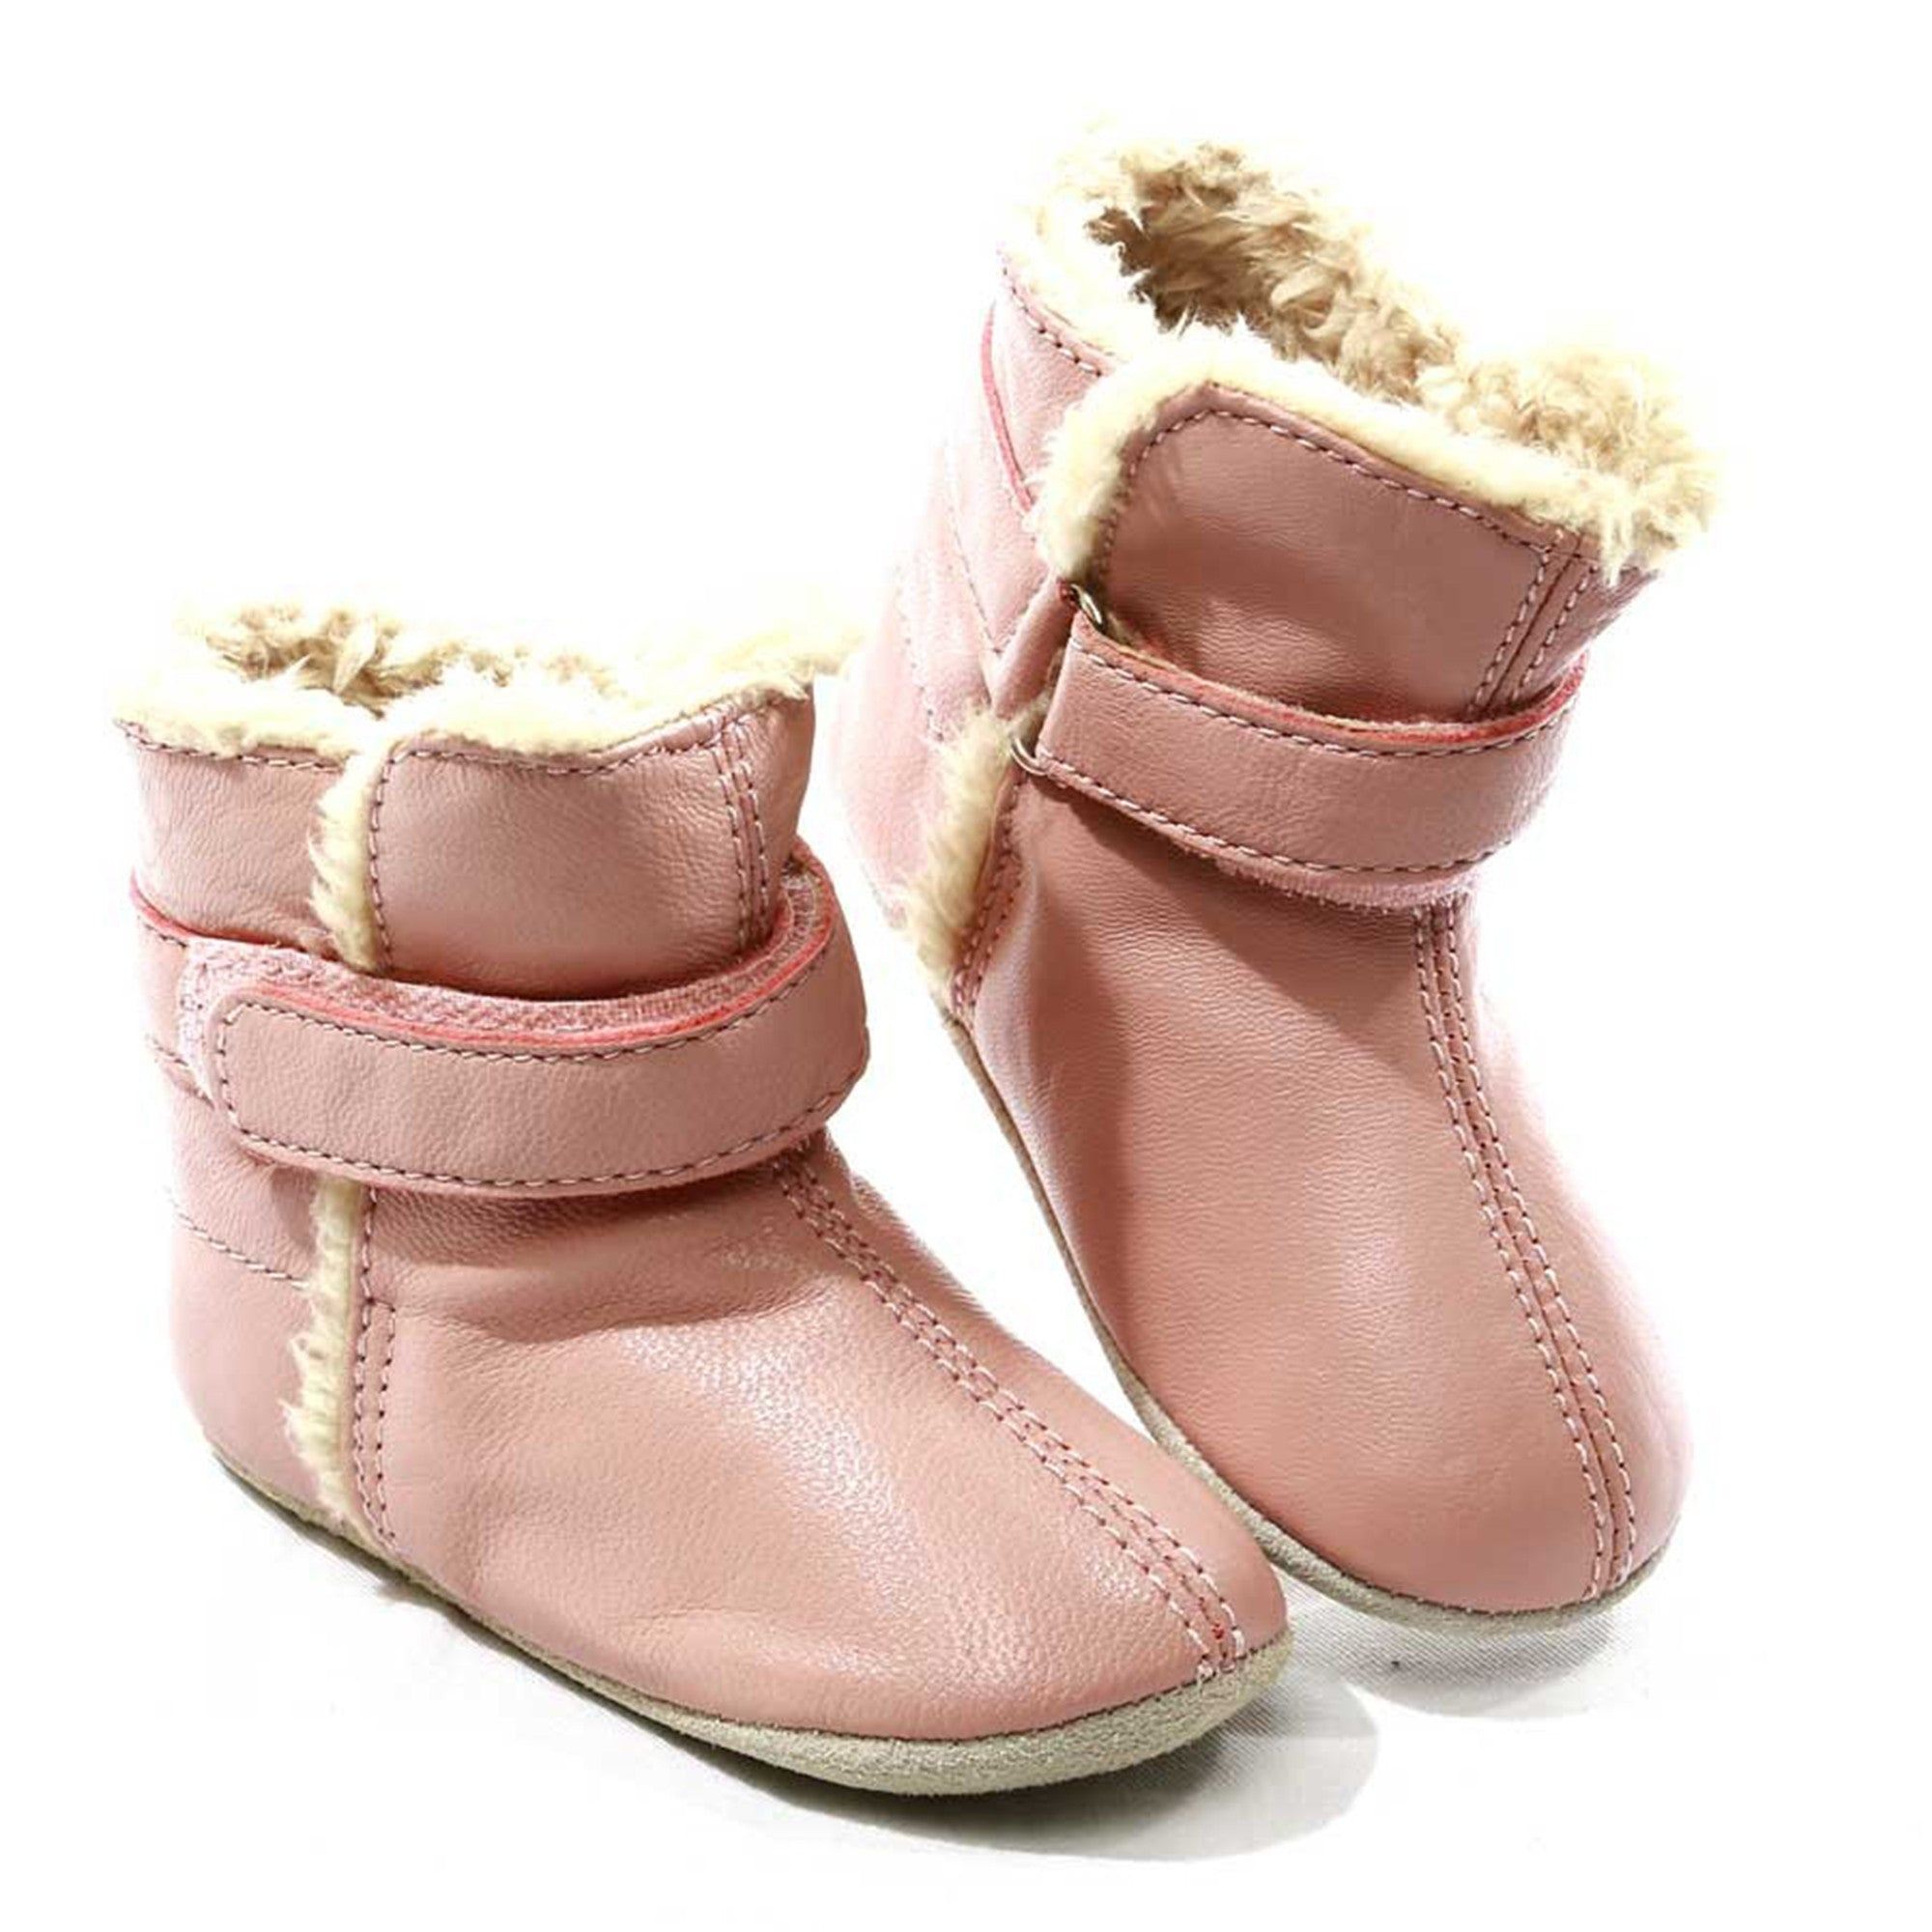 Skeanie Infant Snug Skeanie Shoes S / Pink at Little Earth Nest Eco Shop